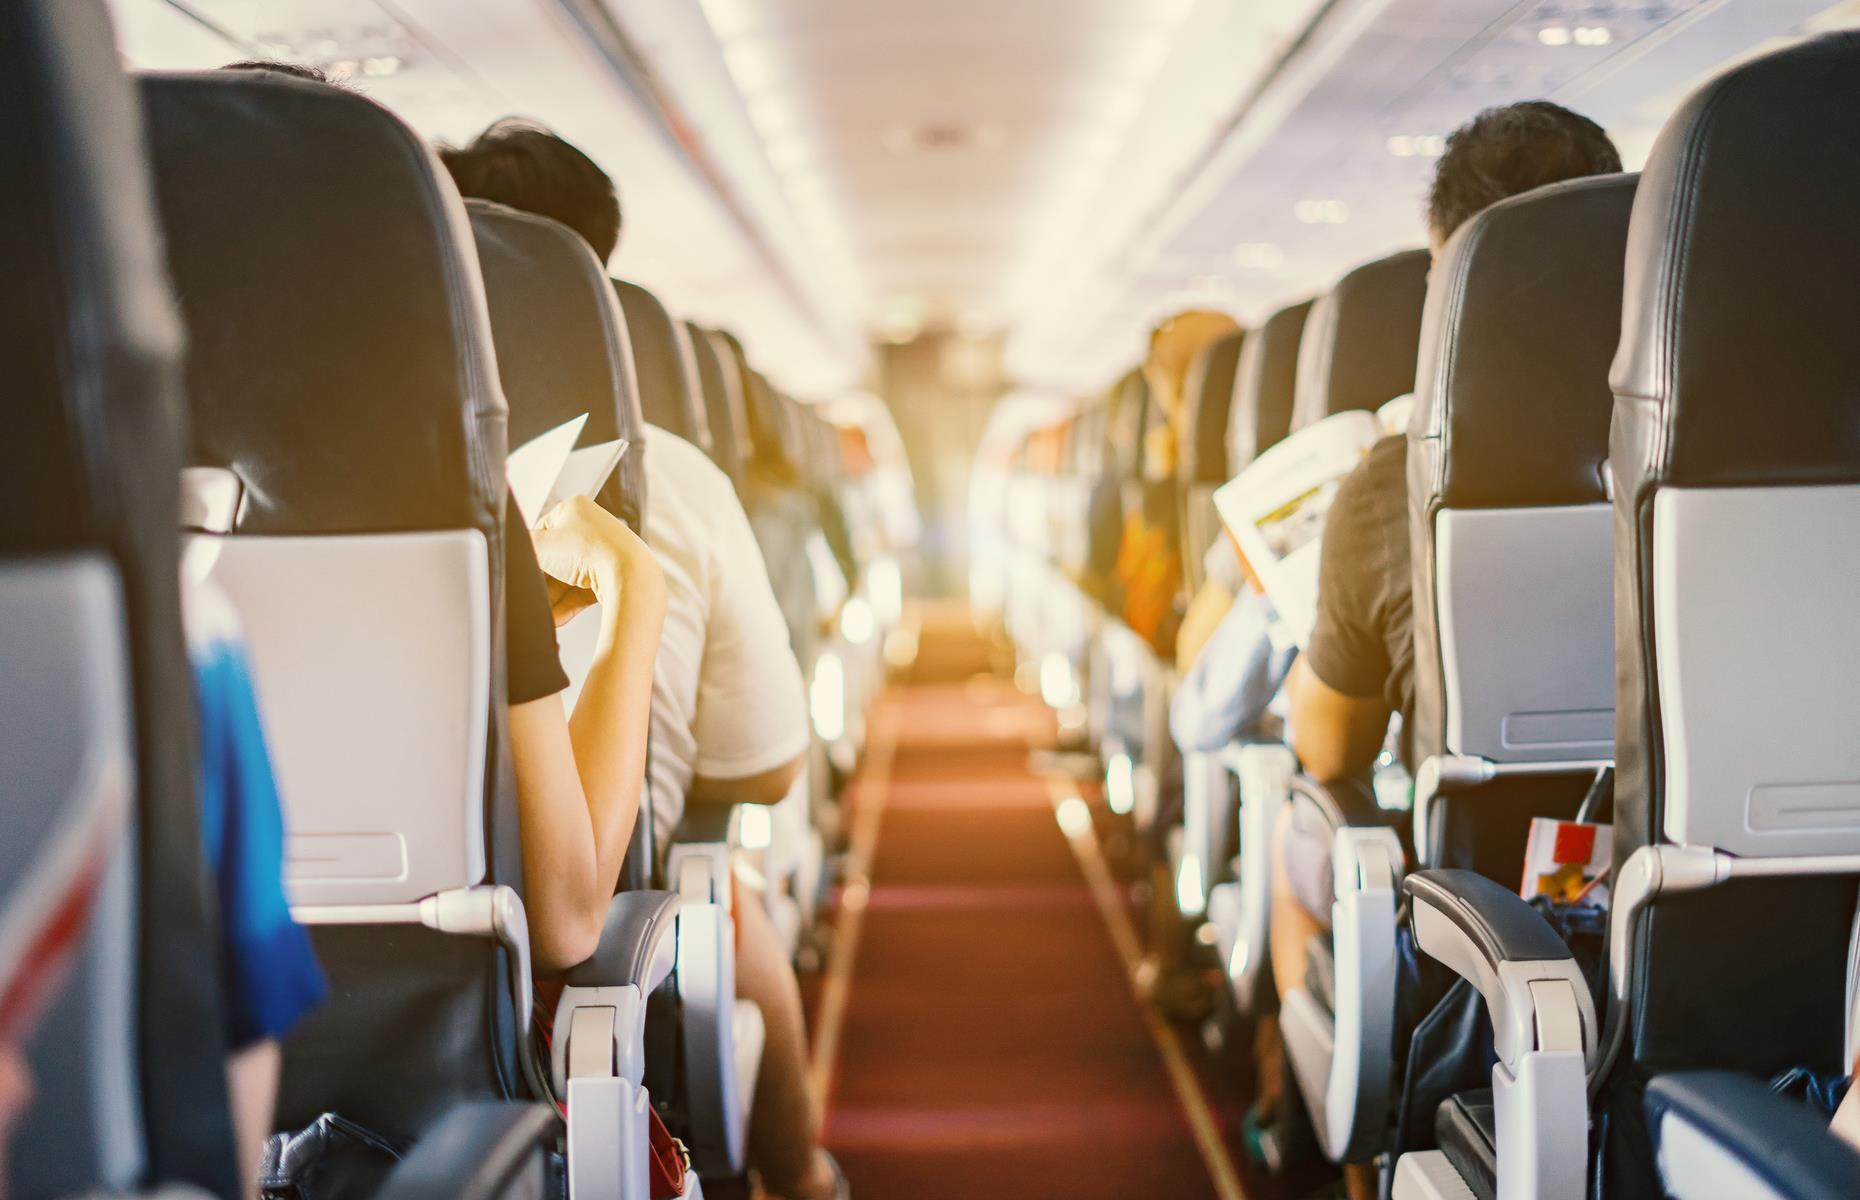 """Slide 8 of 63: The quality of cabin air has been a point of hot dispute for some time. Though most airlines insist there are no risks associated with breathing cabin air,some studies, including safety reports from the CAA, suggest otherwise. The air you breathe on board contains """"bleed air"""", which is taken from a turbine engine, compressed and conditioned, and pumped into the cabin. Some argue that it can become contaminated with chemicals which contribute to a range of health issues. The debate continues."""